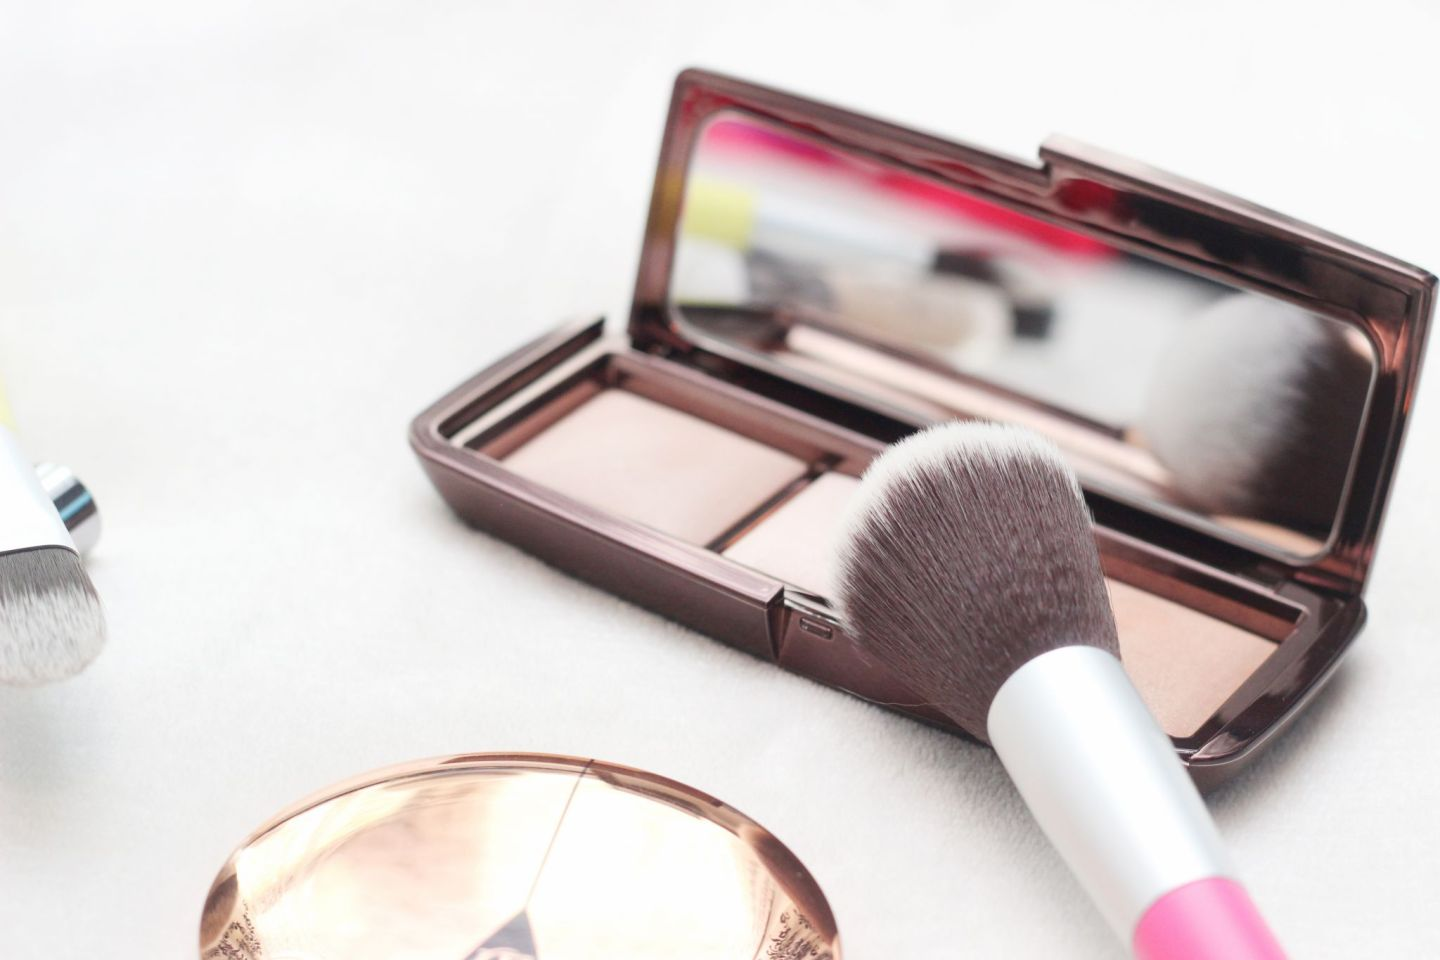 Benecos powder brush and Hourglass Ambient Lighting Palette